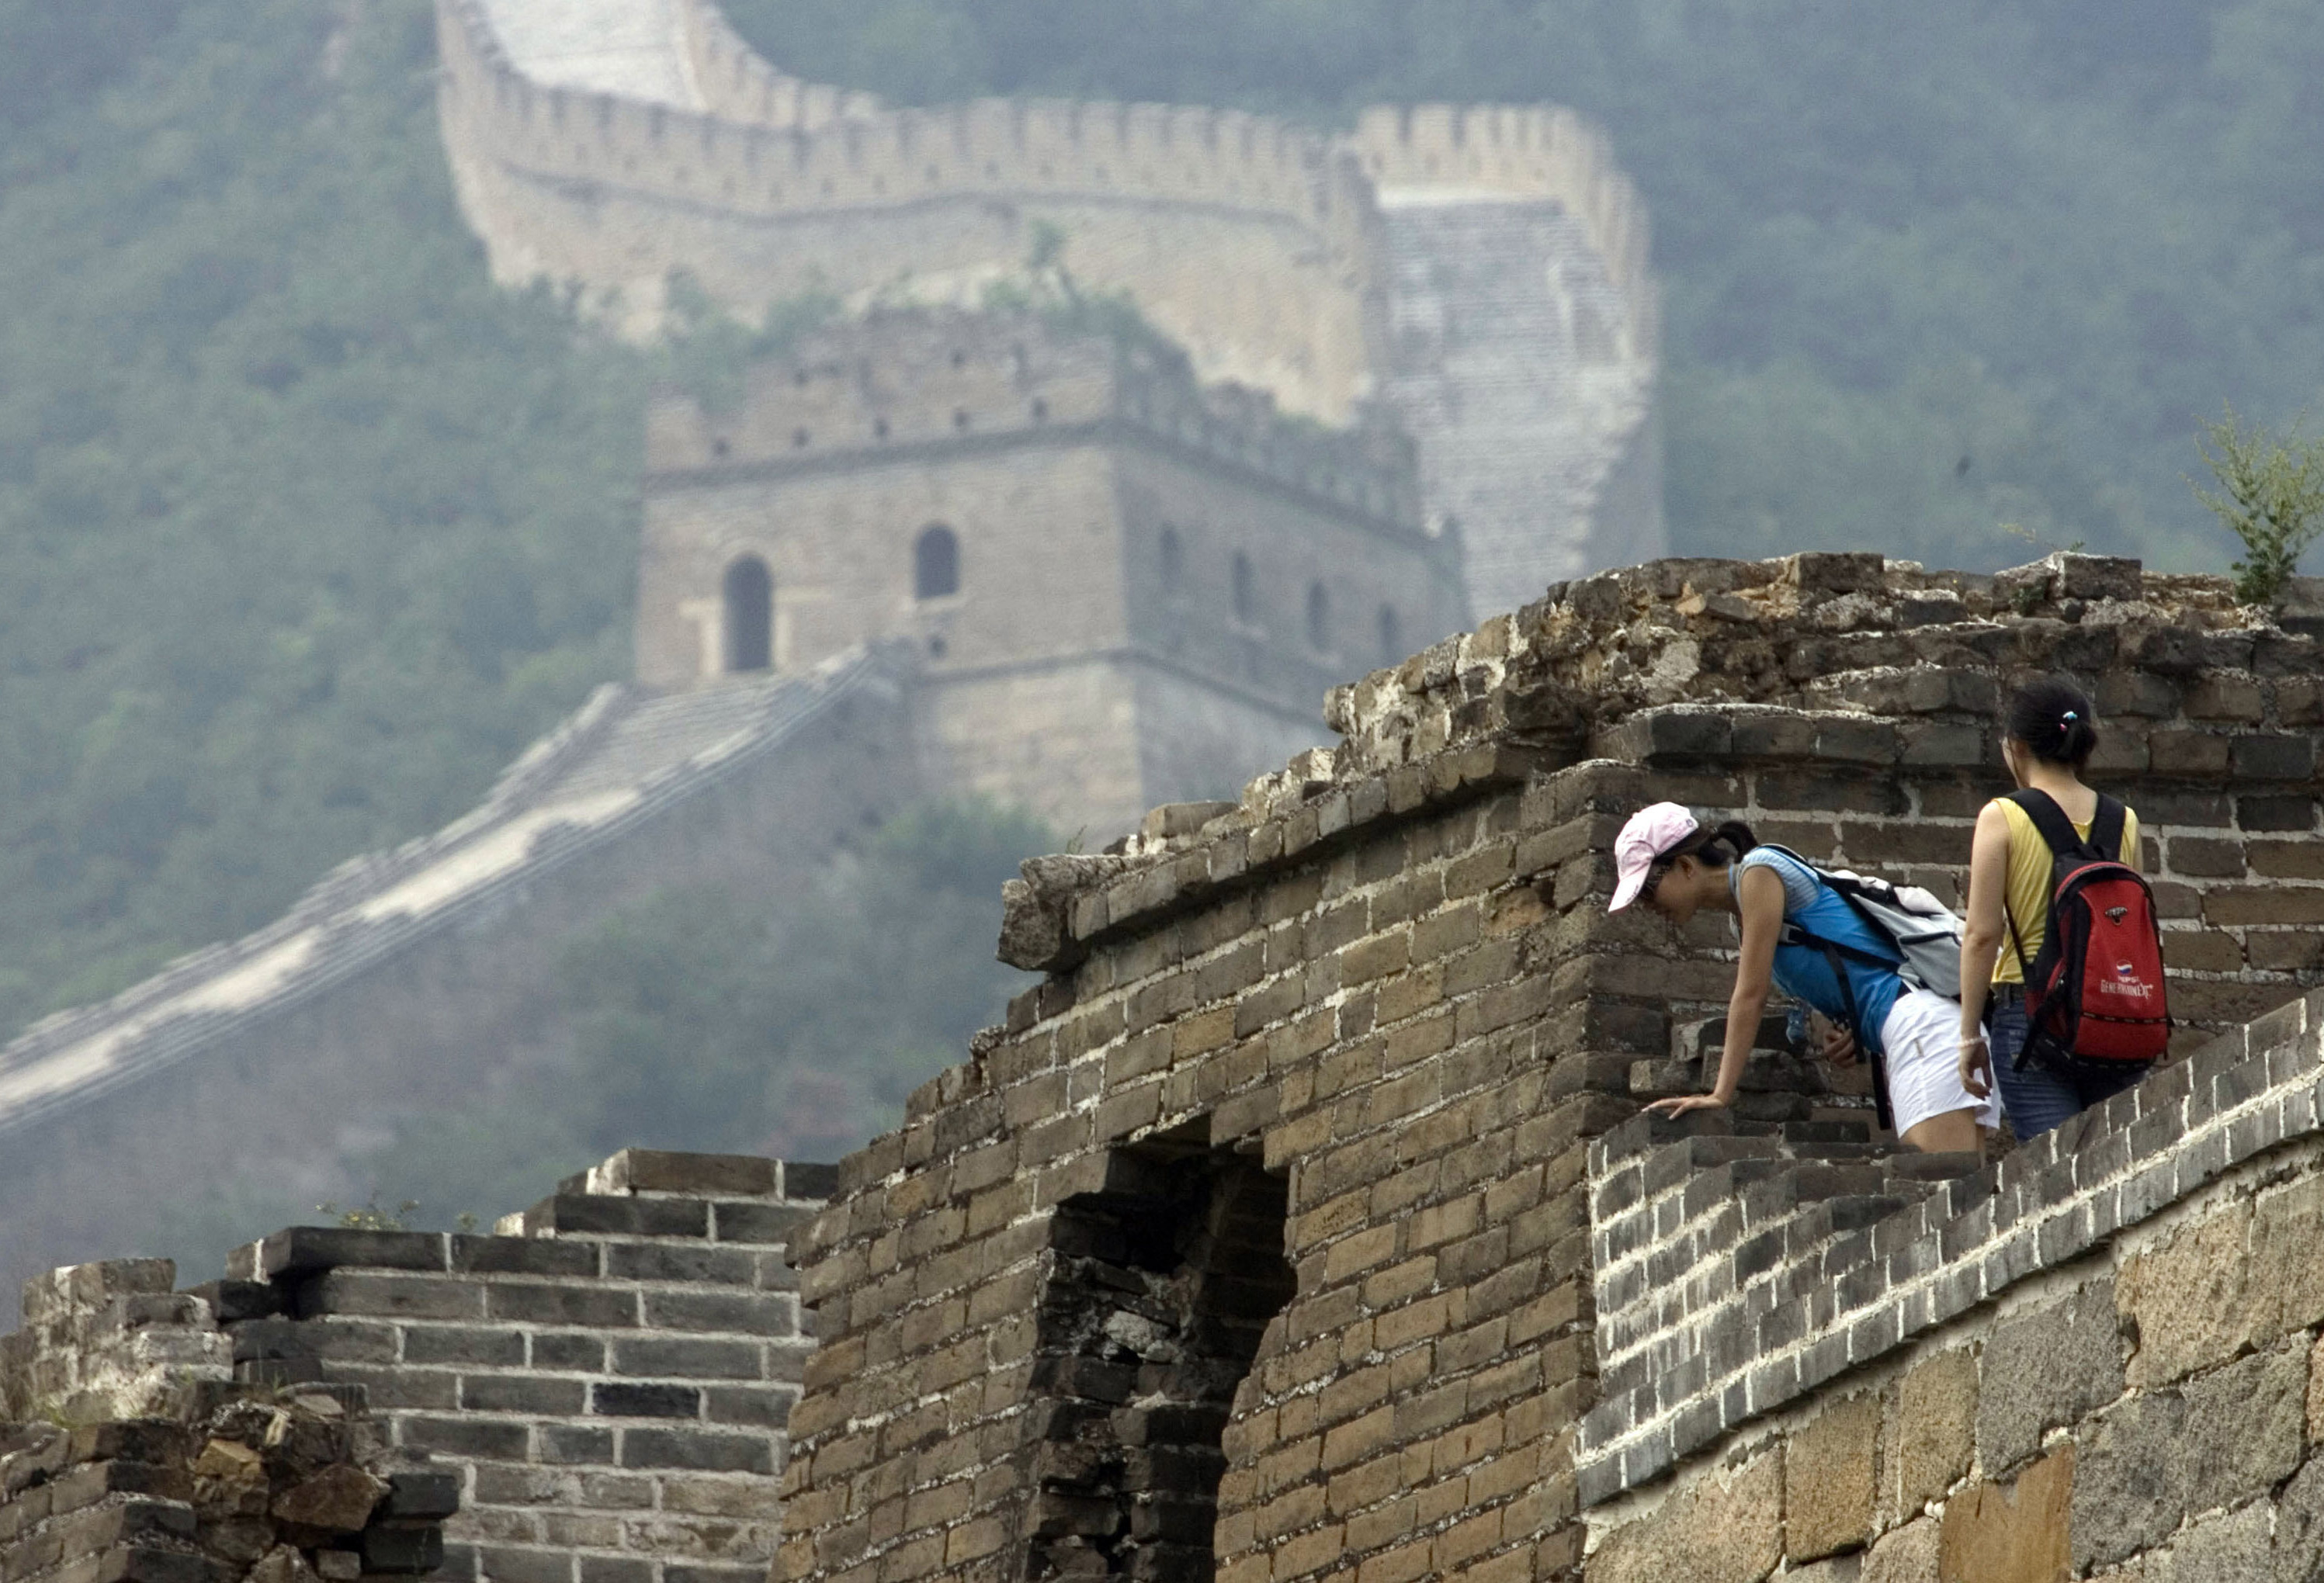 Chinese officials criticised over 'ugly' Great Wall repairs